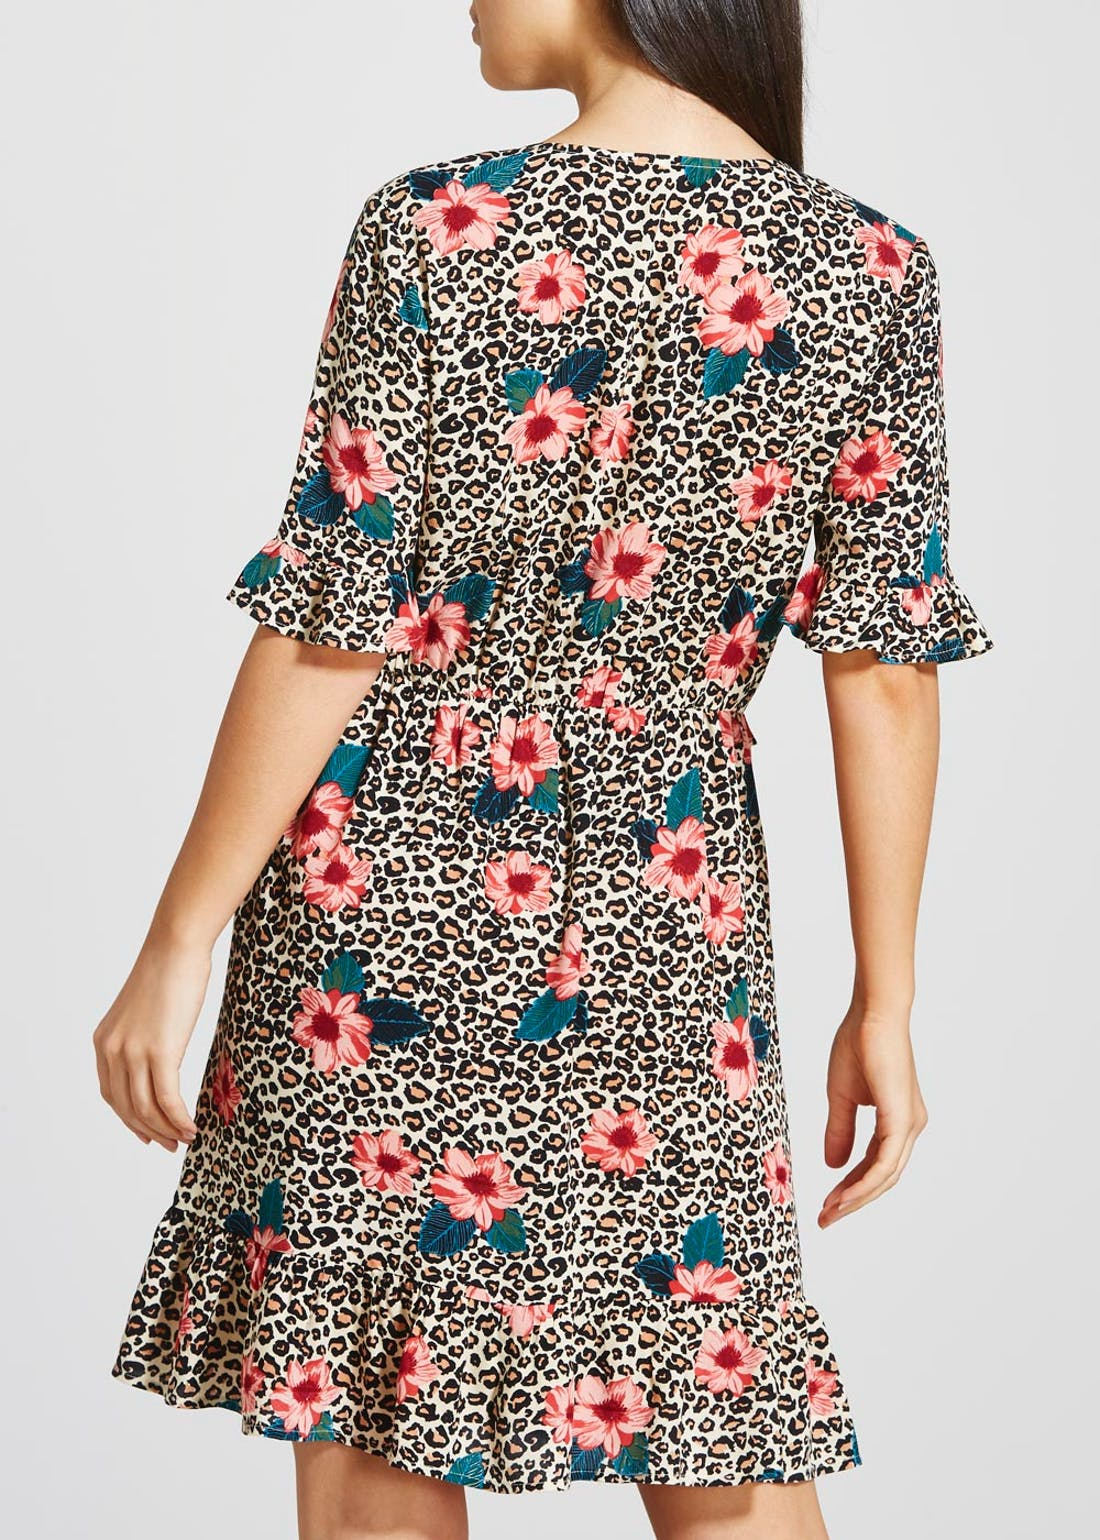 Floral Leopard Print Button Front Tea Dress